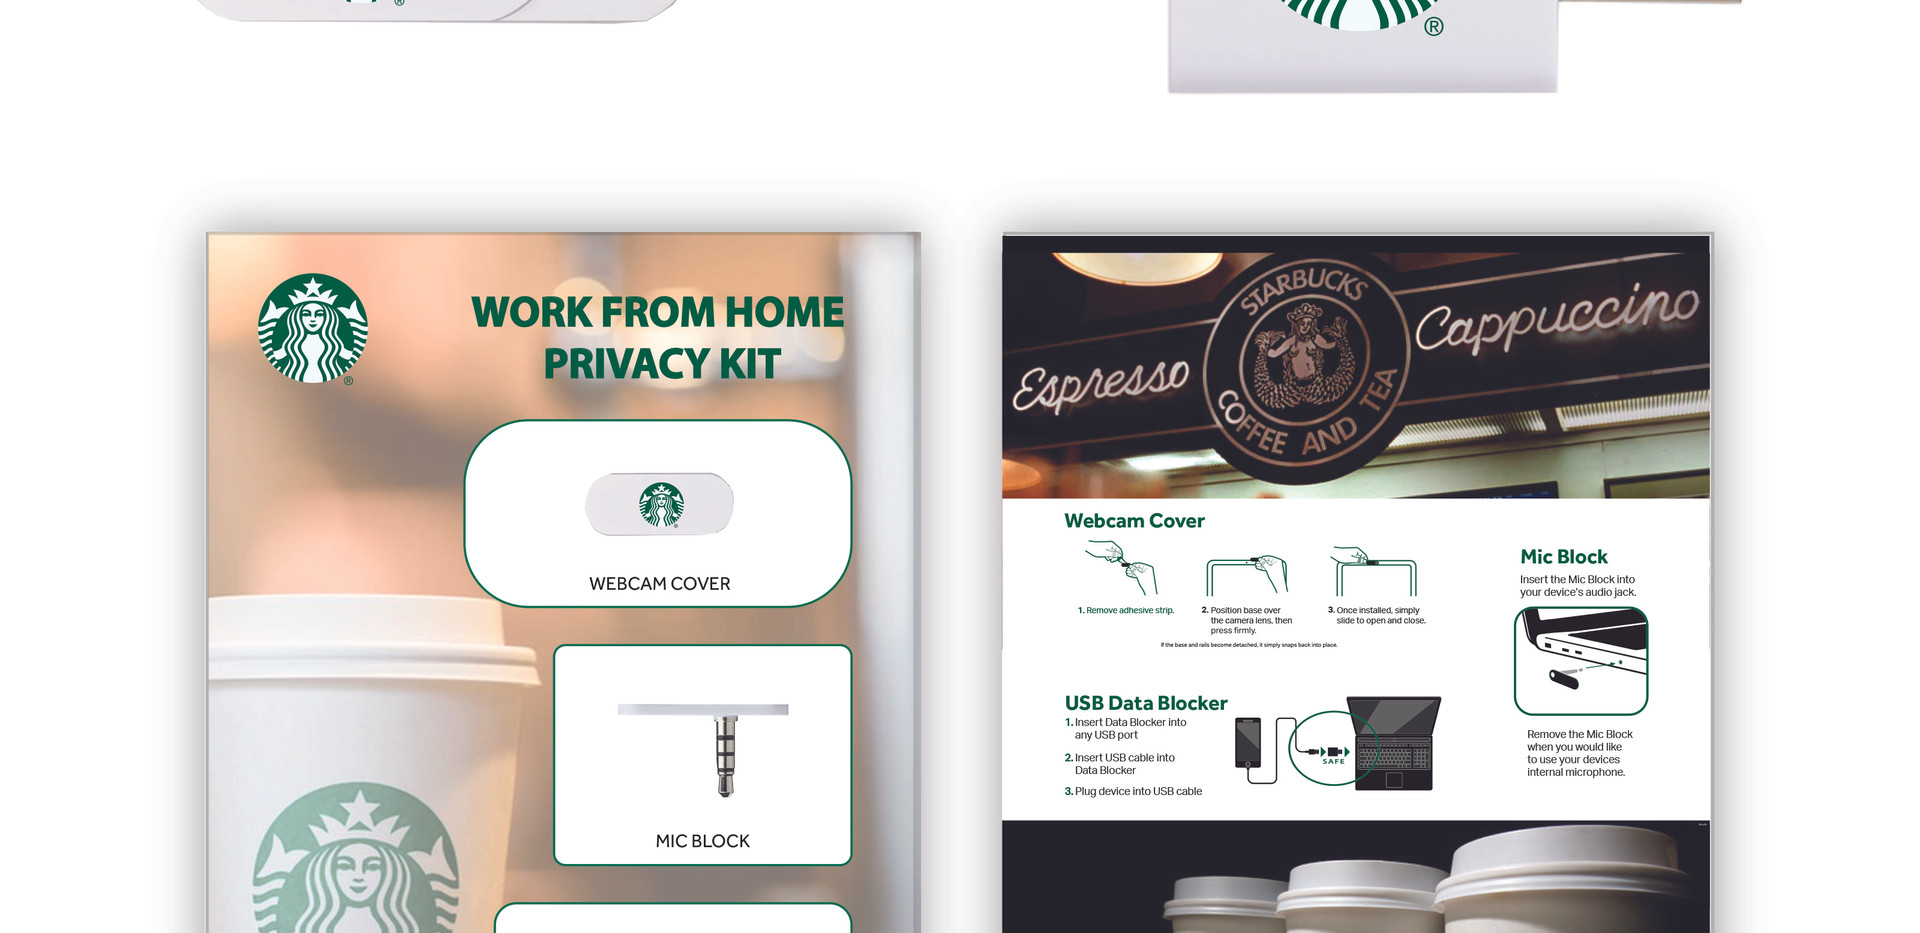 Starbucks WFHK 3P custom packaging.jpg